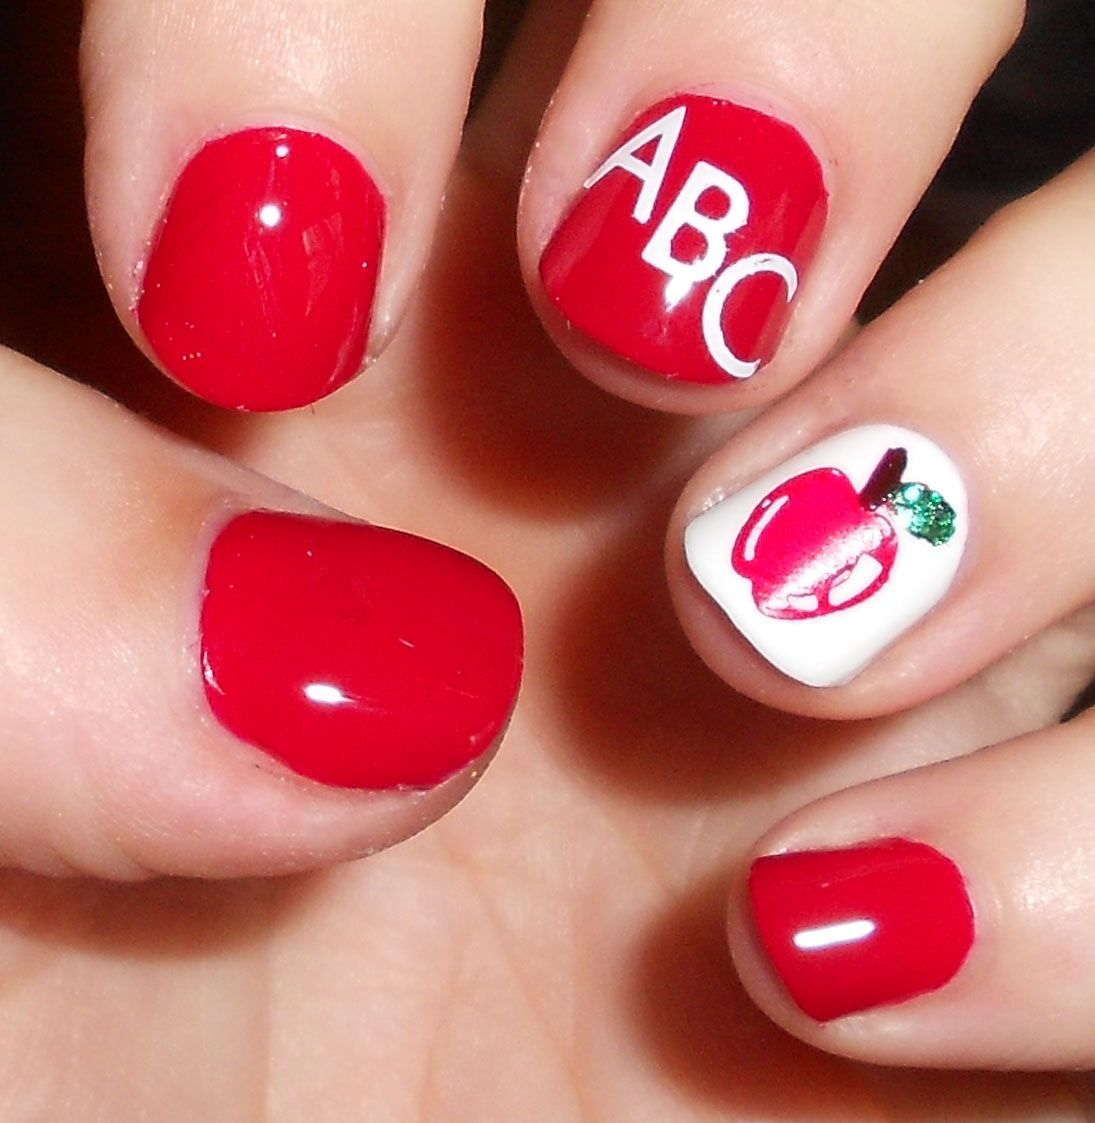 School nail art - She Who Does Nails: Back To School - Indoor With Flash -- Jess